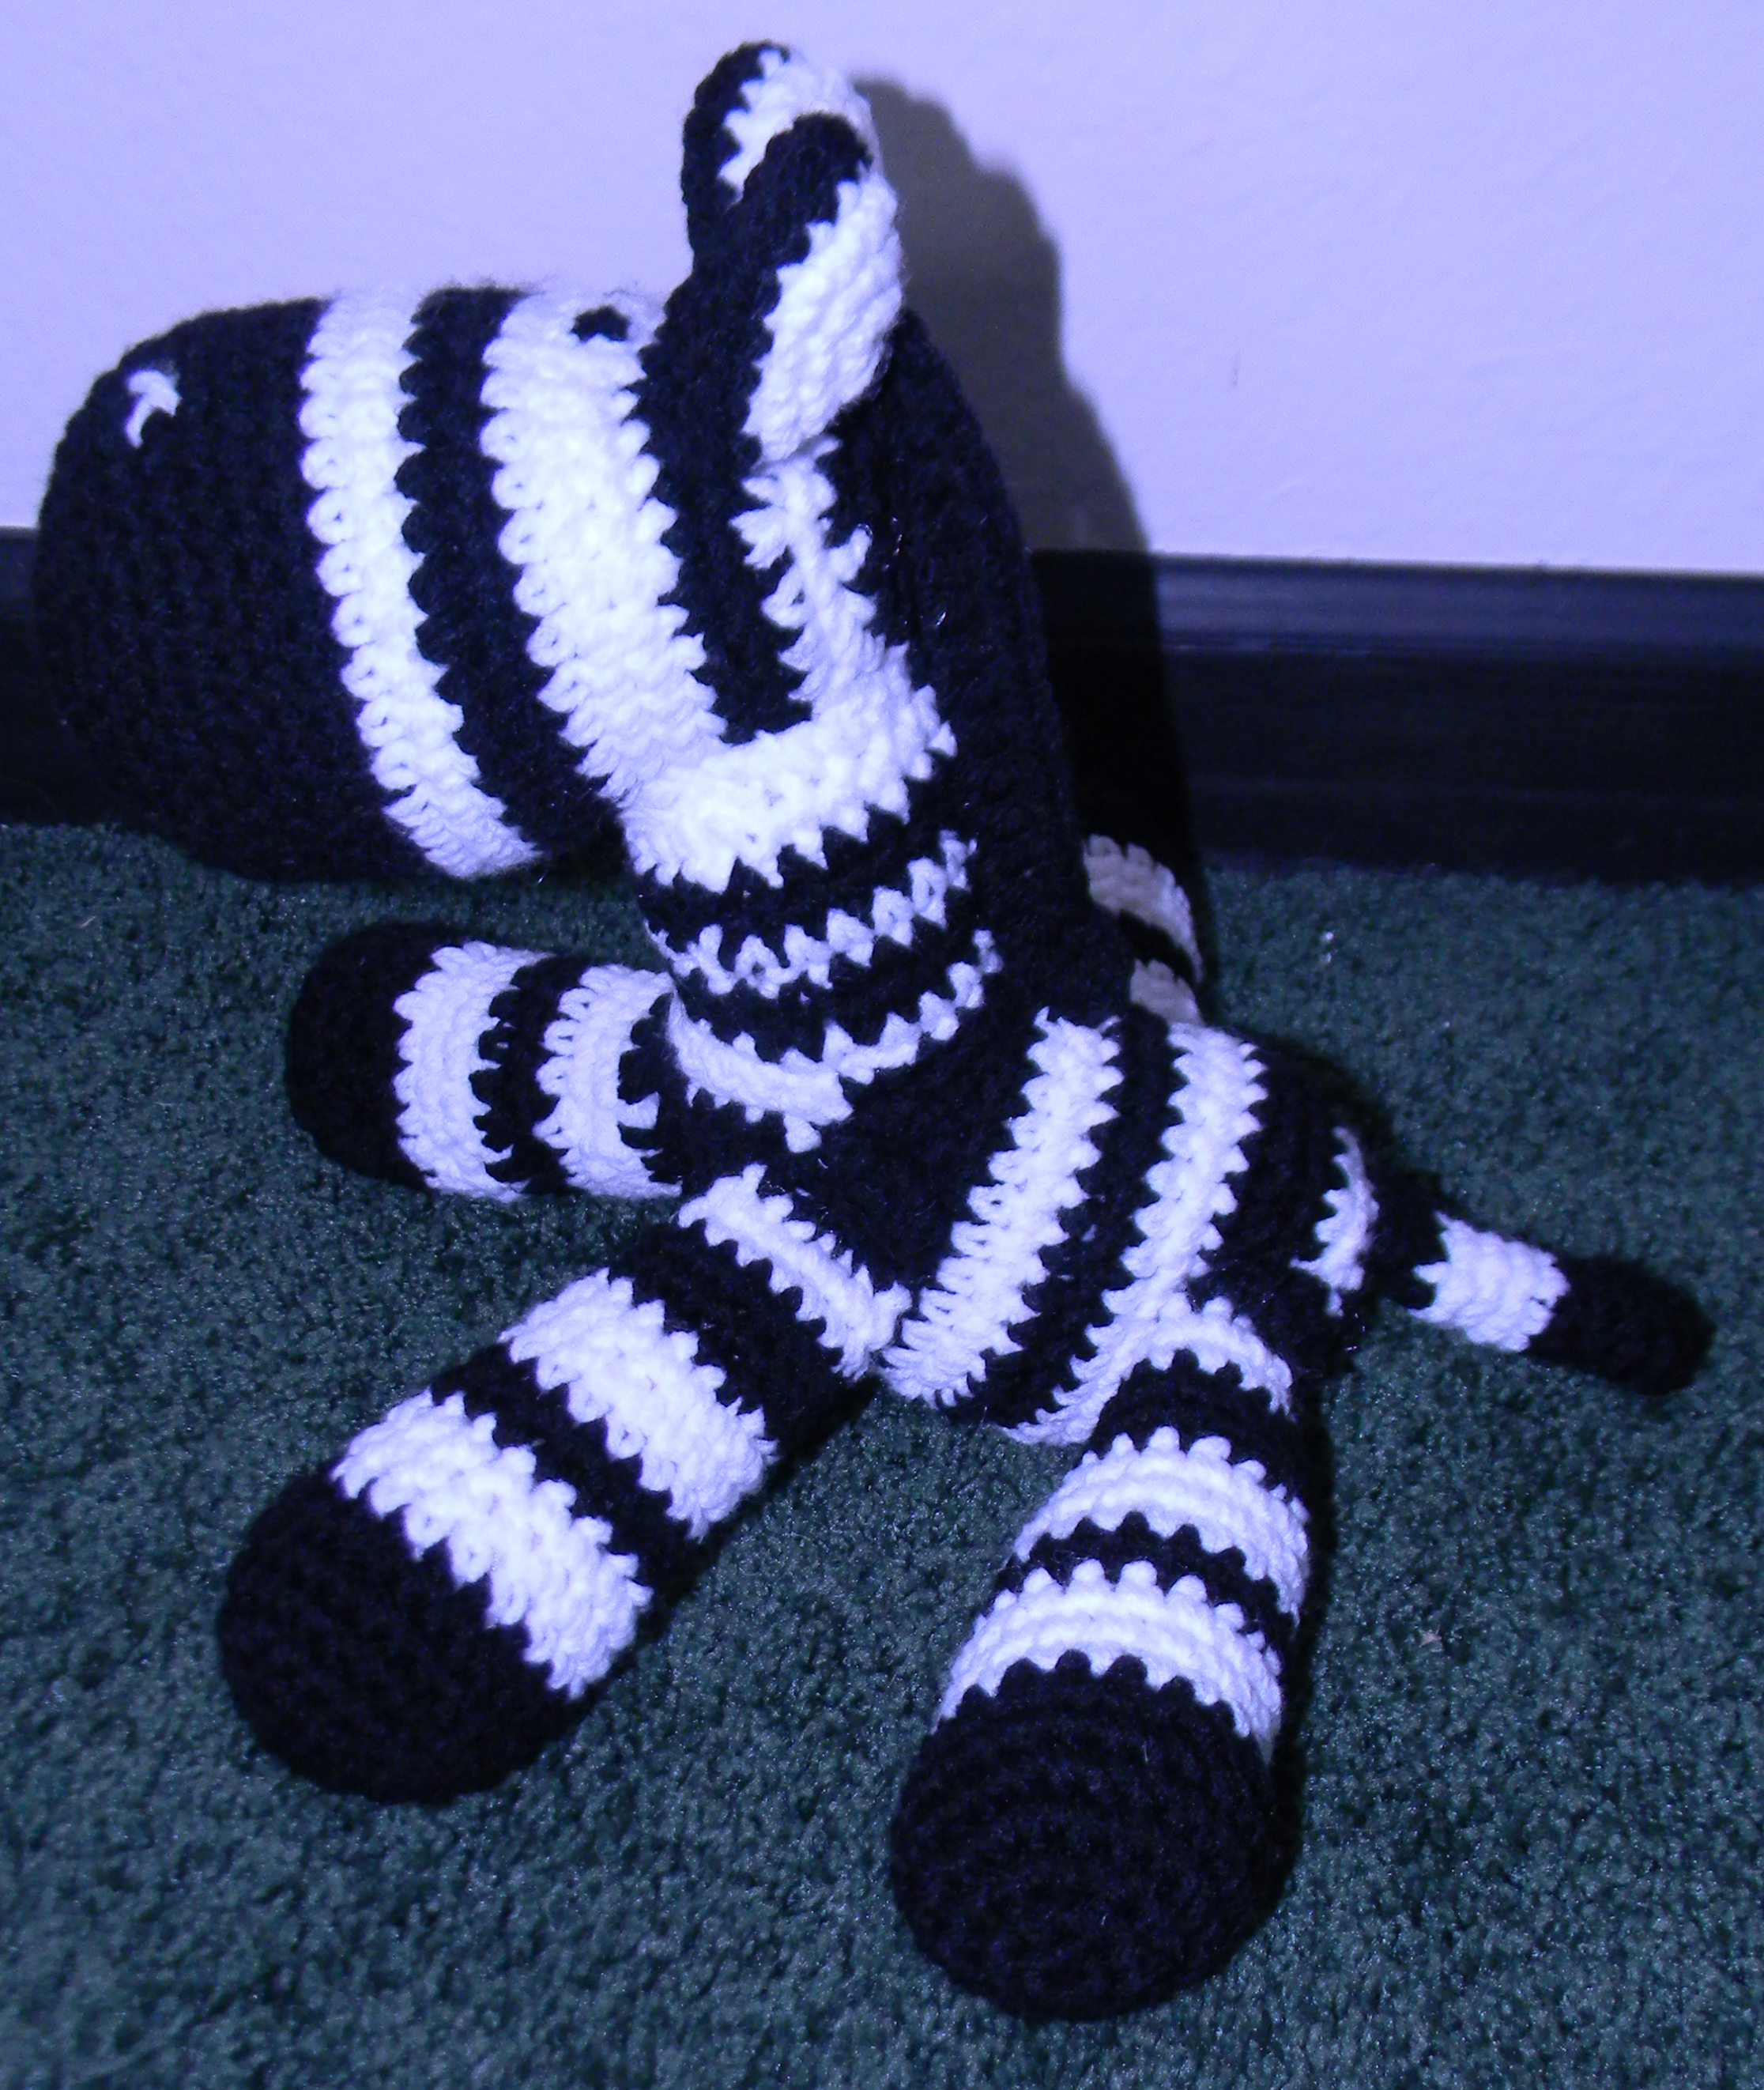 Crochet Zebra Blanket : The baby blanket pattern was purchased from churchmouseyarns.com on ...